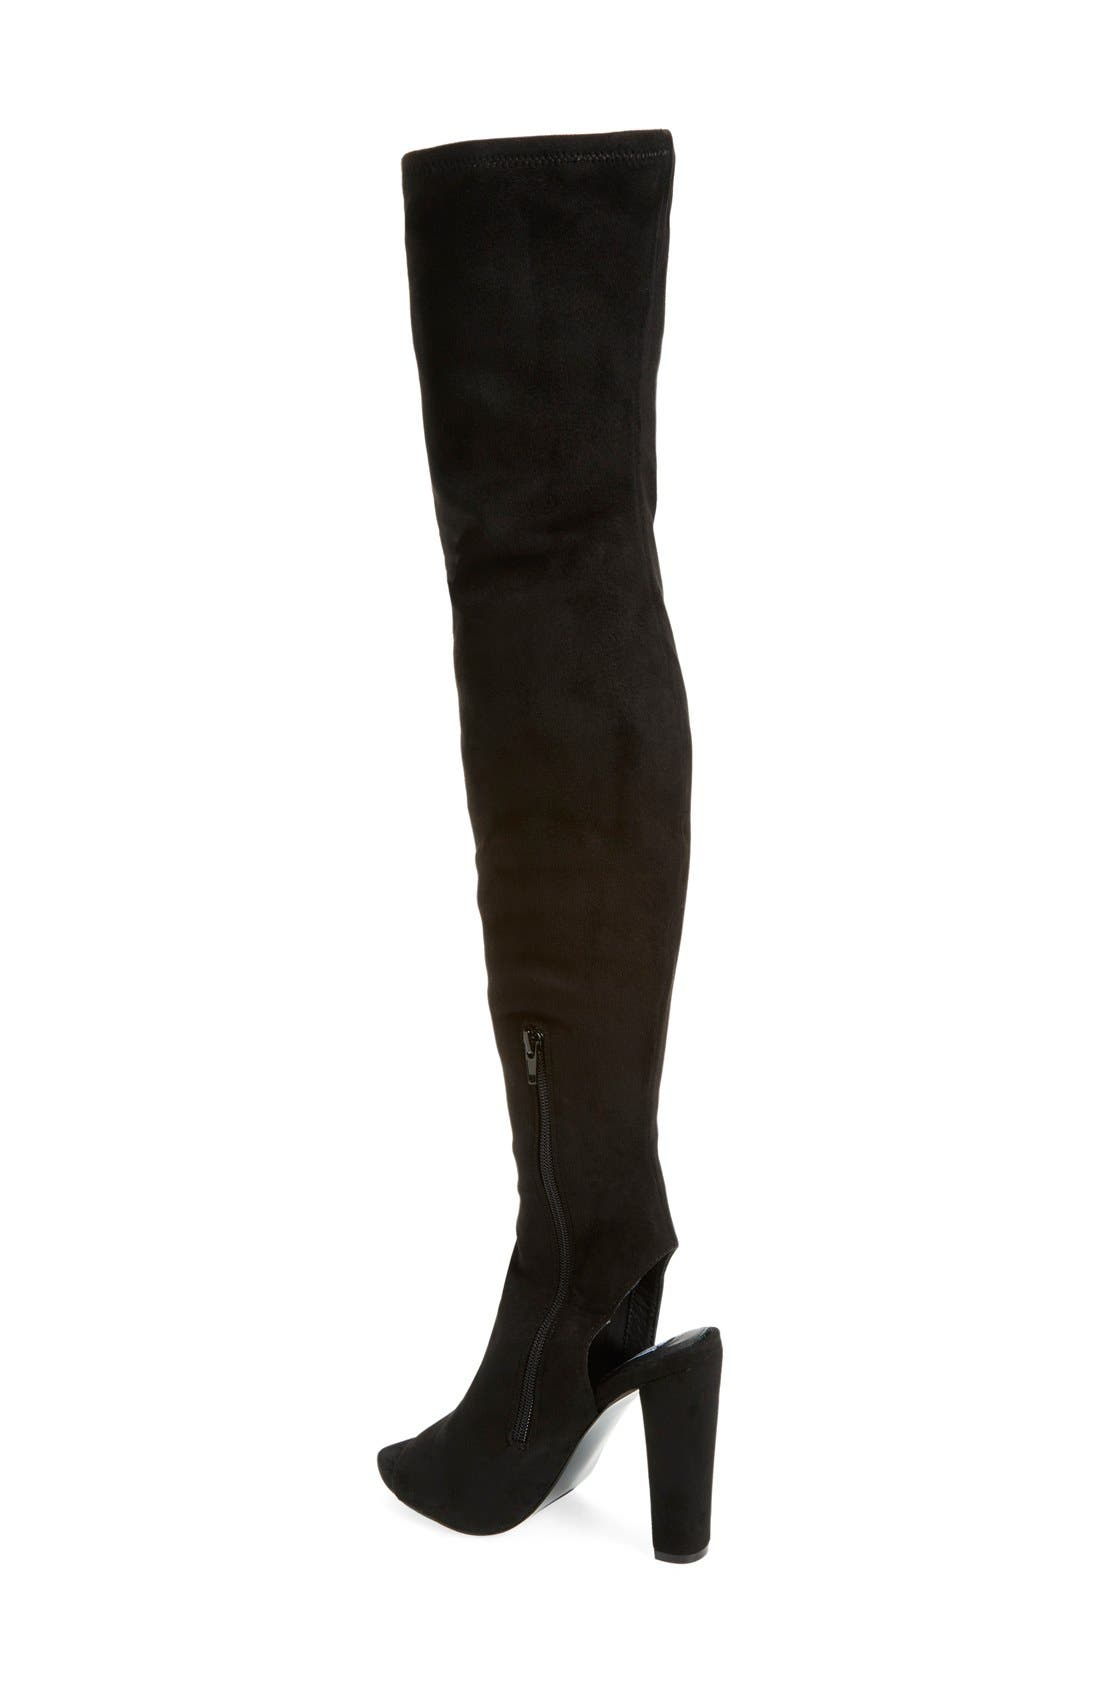 'Yimme' Over the Knee Boot,                             Alternate thumbnail 4, color,                             007